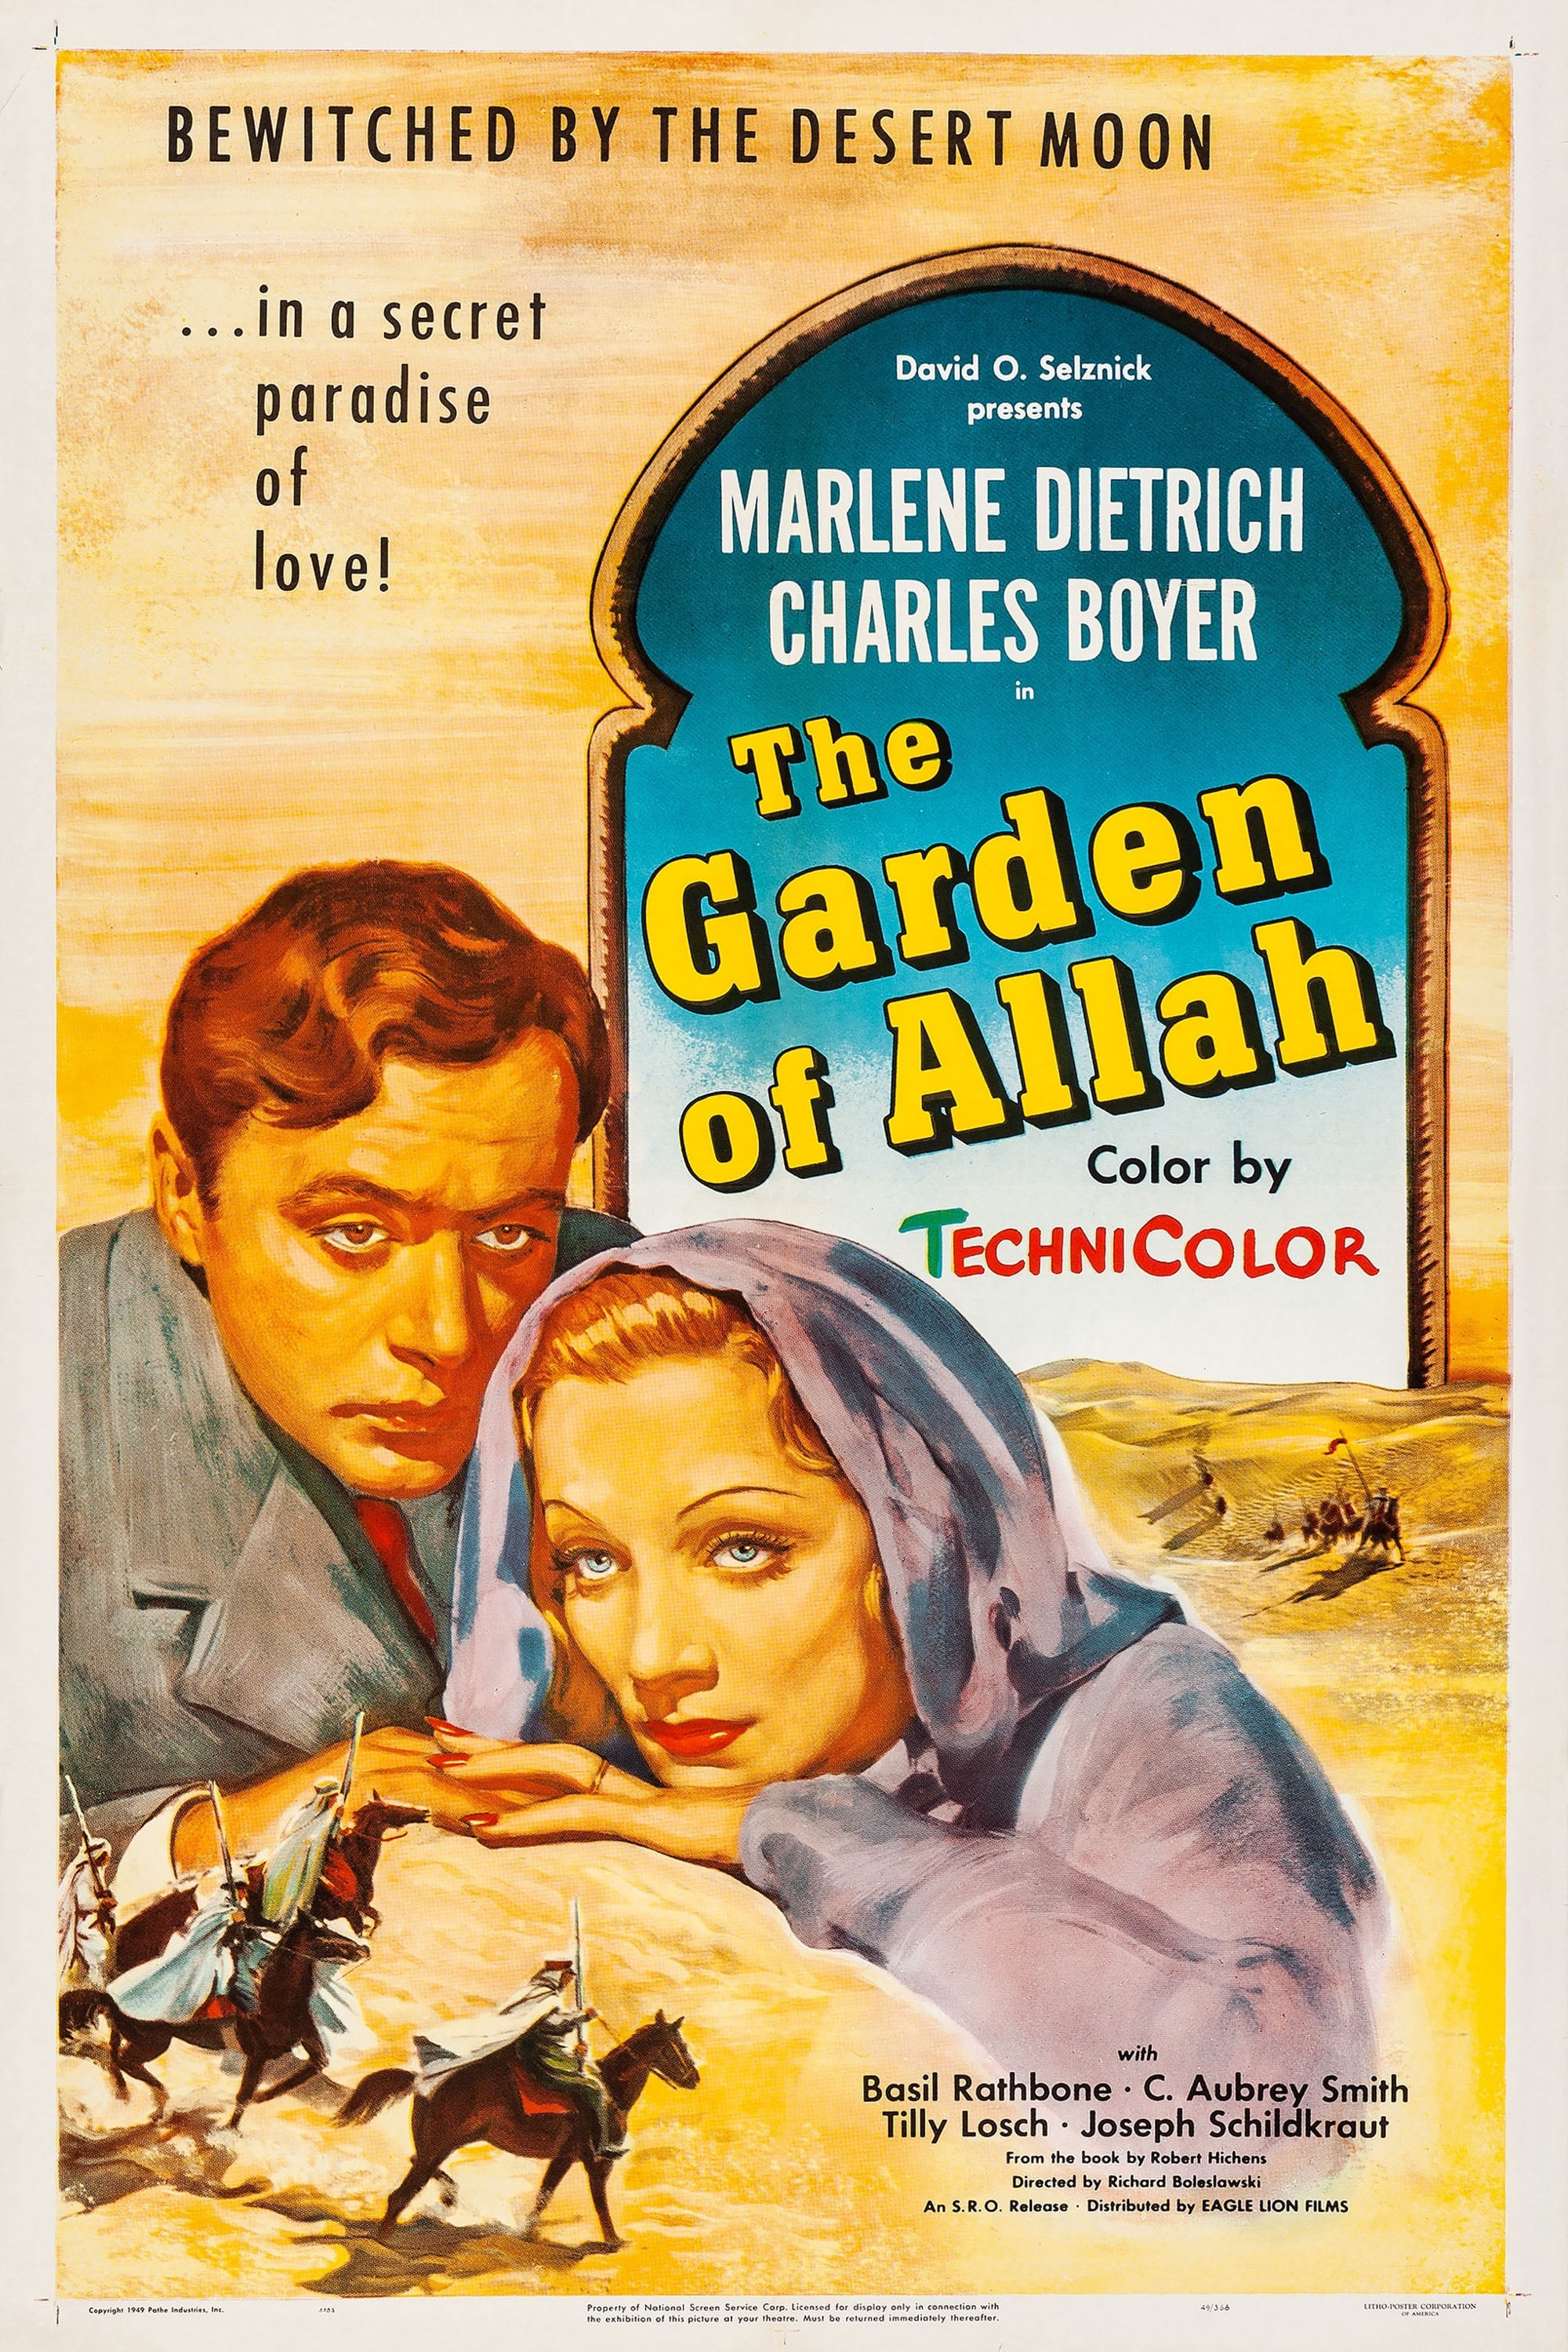 The Garden of Allah (1936)